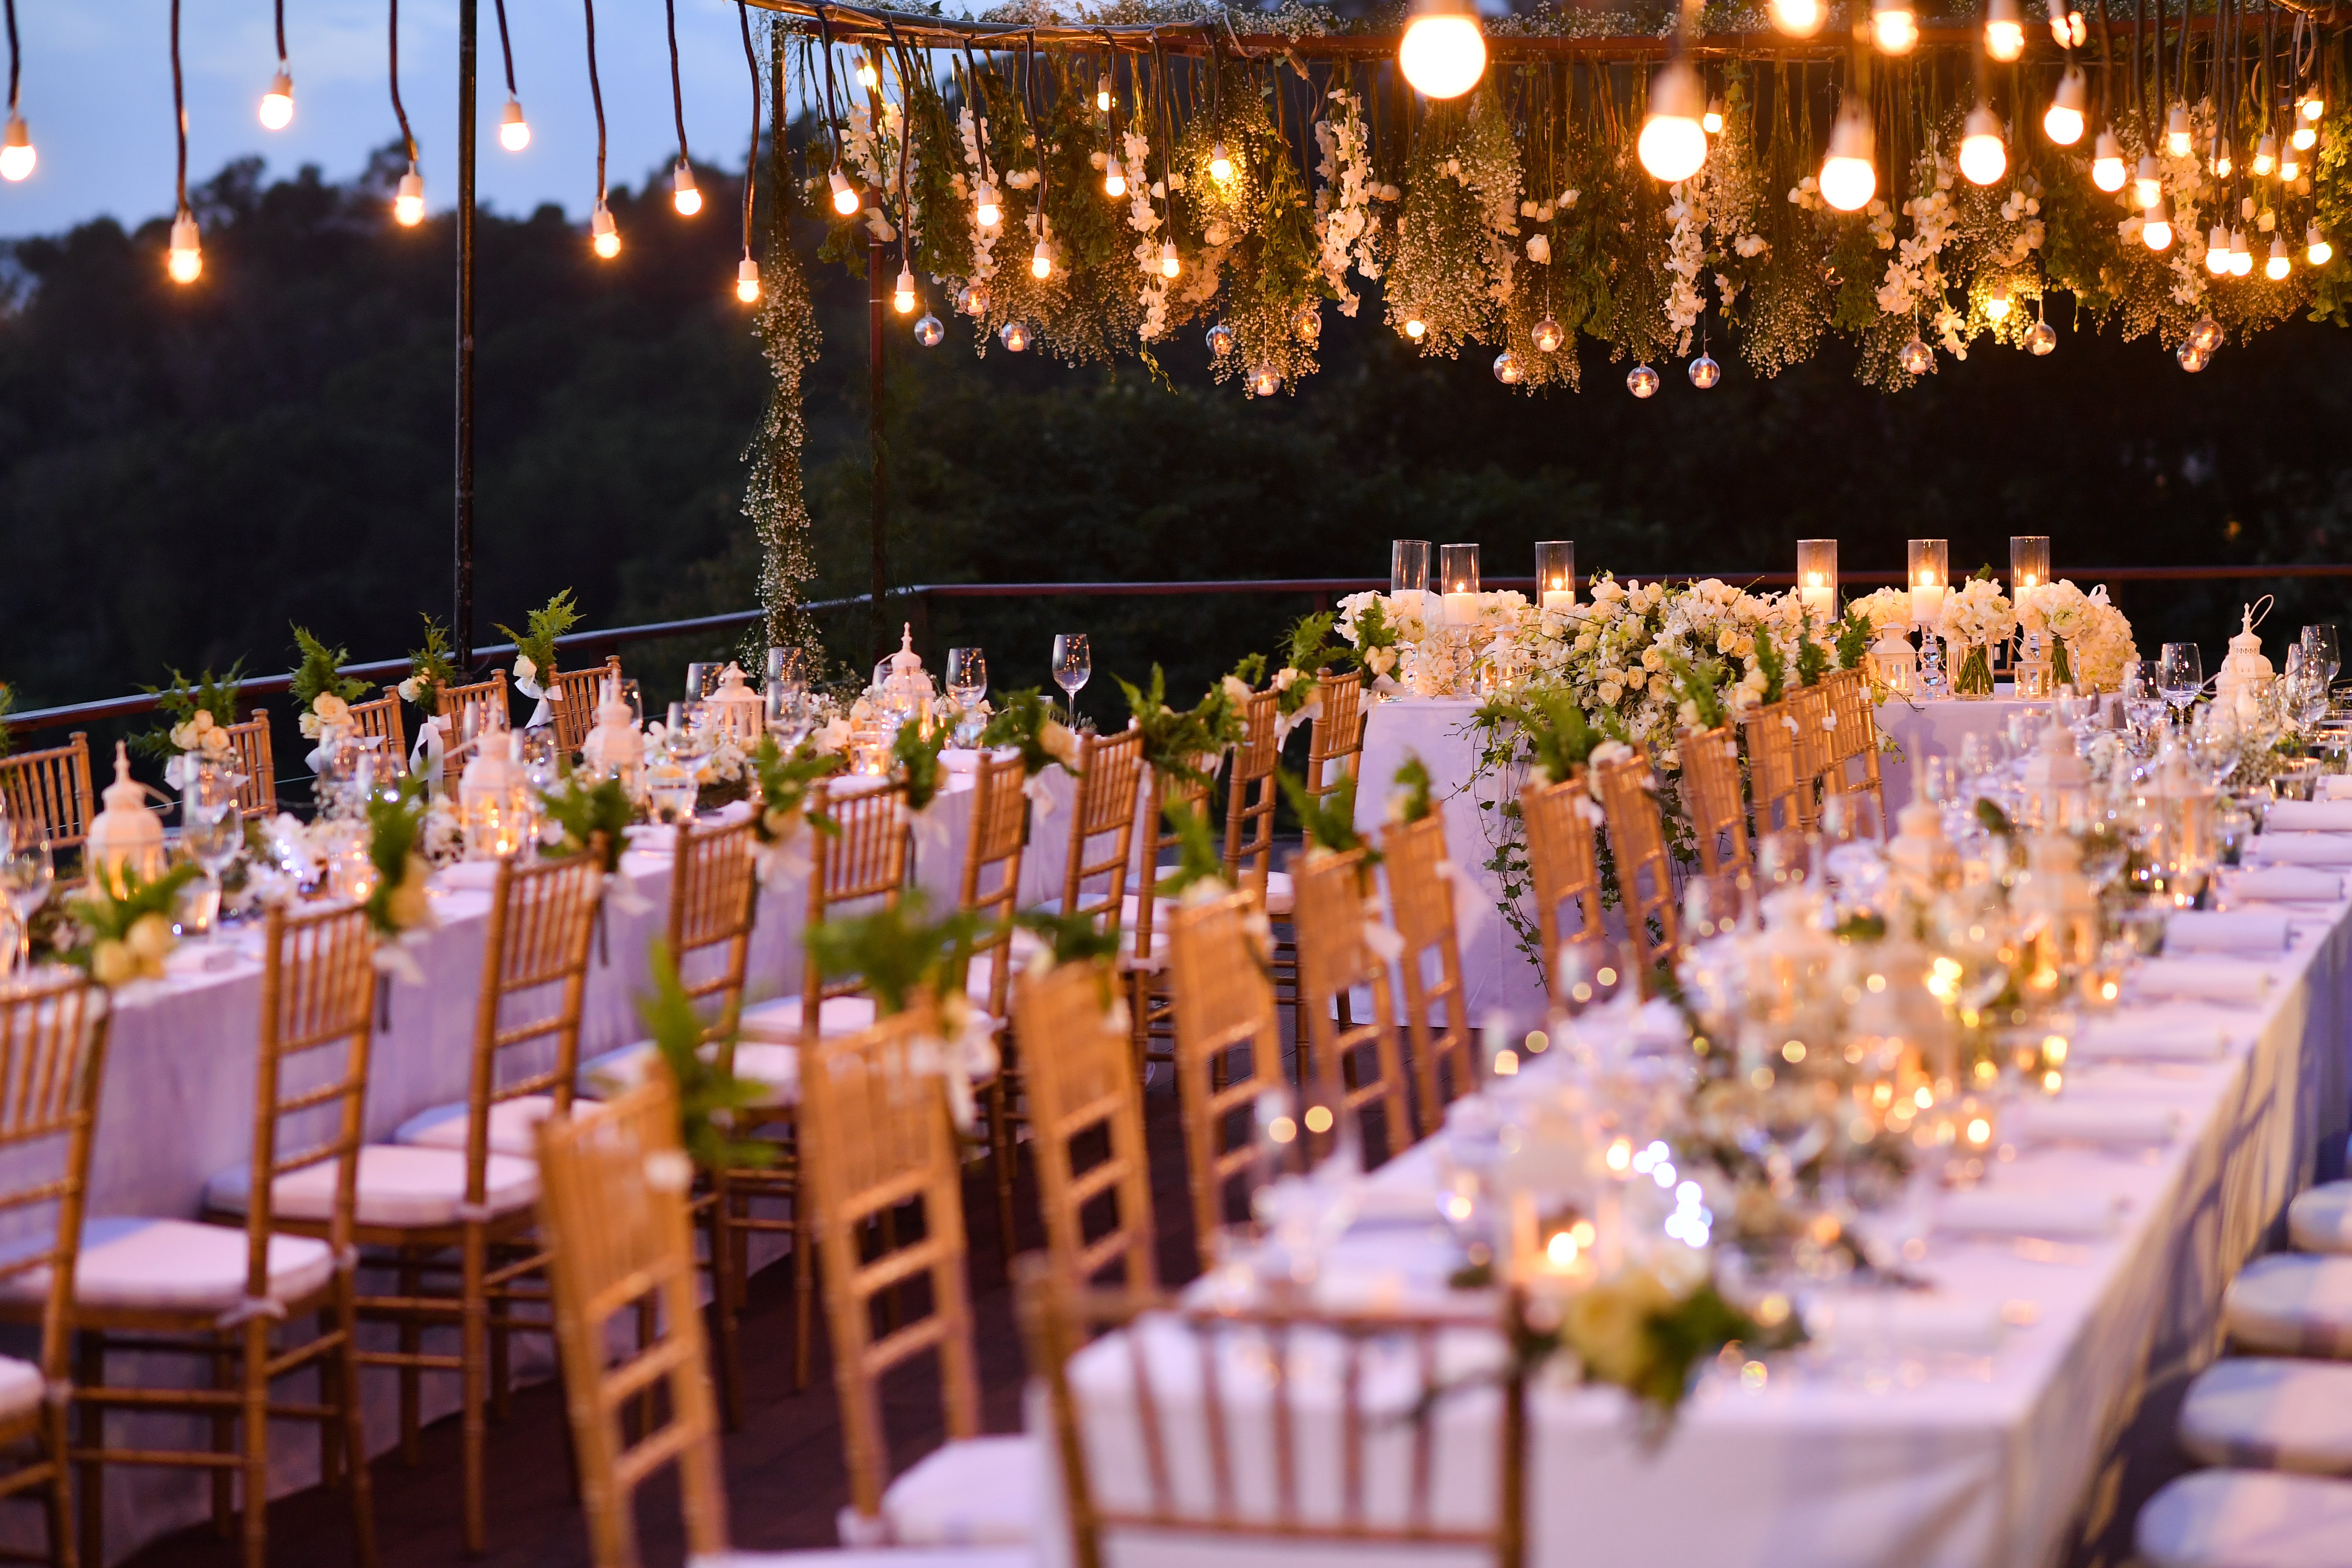 Dinner tables for the wedding guests   Photo: Shutterstock